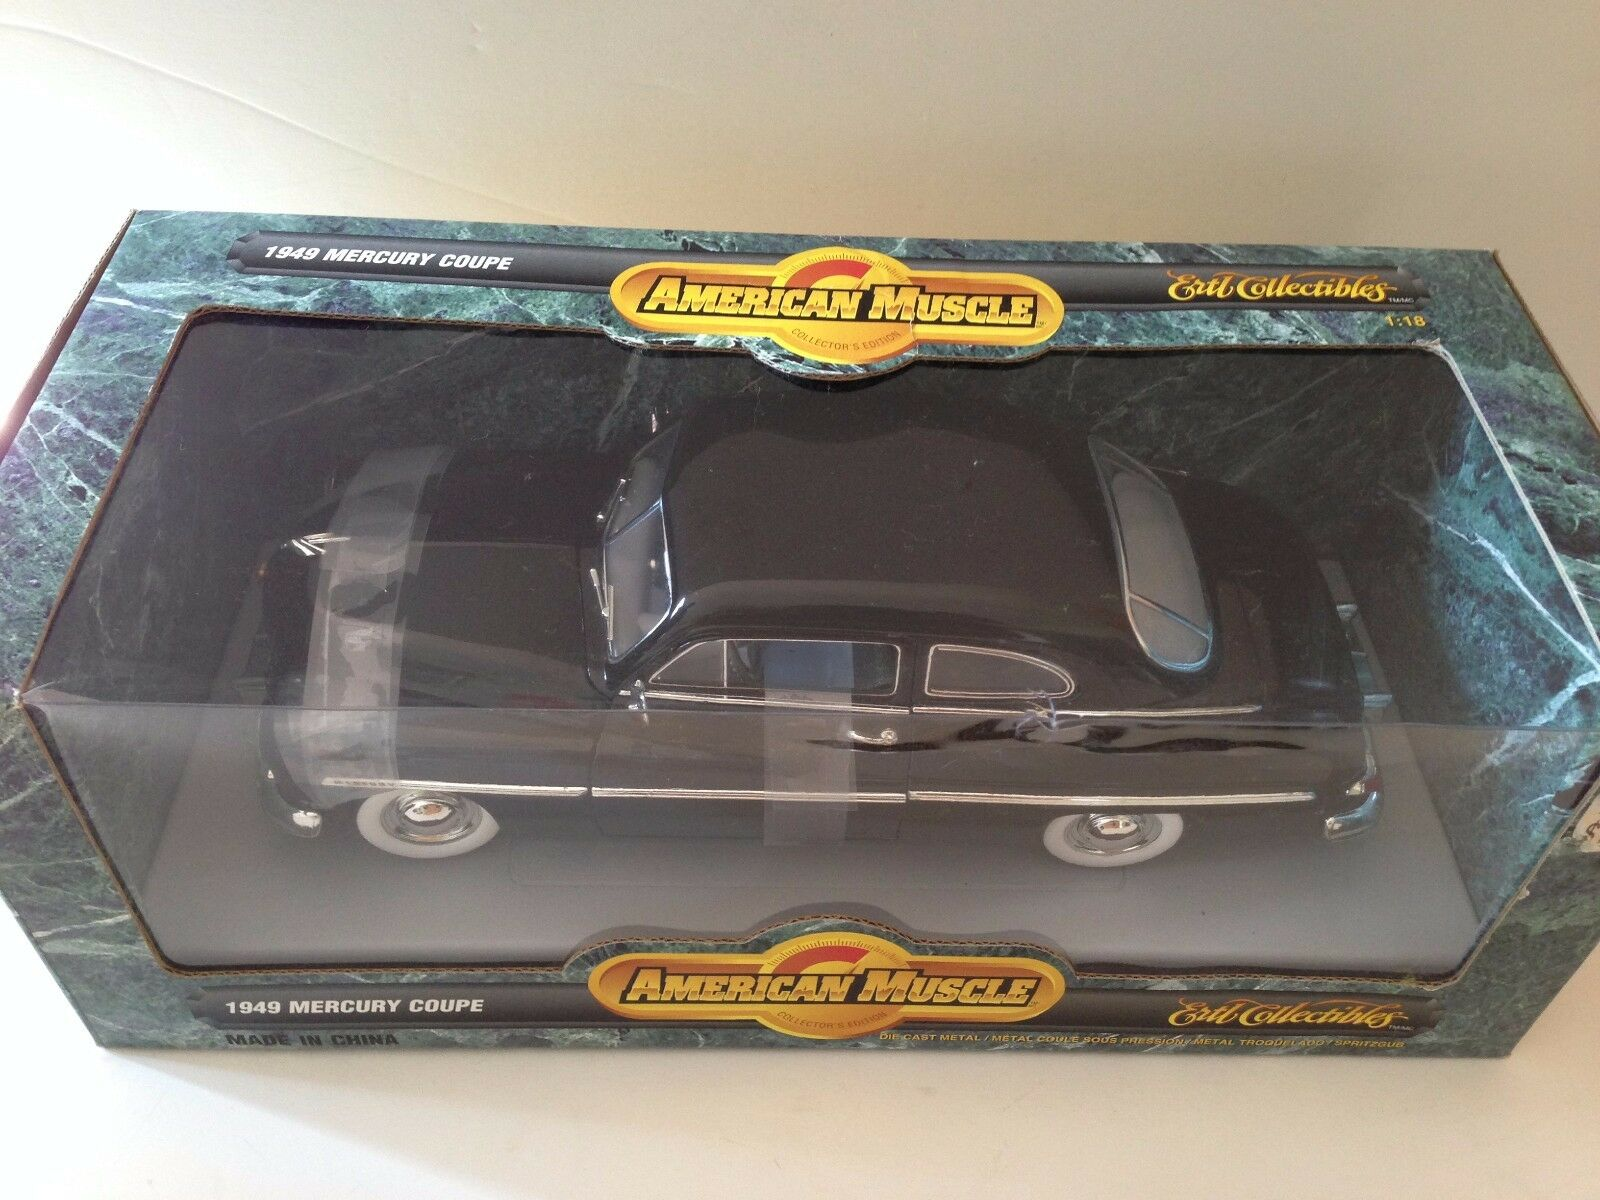 ERTL AMERICAN MUSCLE 1949 MERCURY COUPE  1 18 18 18 (SCALE) bfc57c